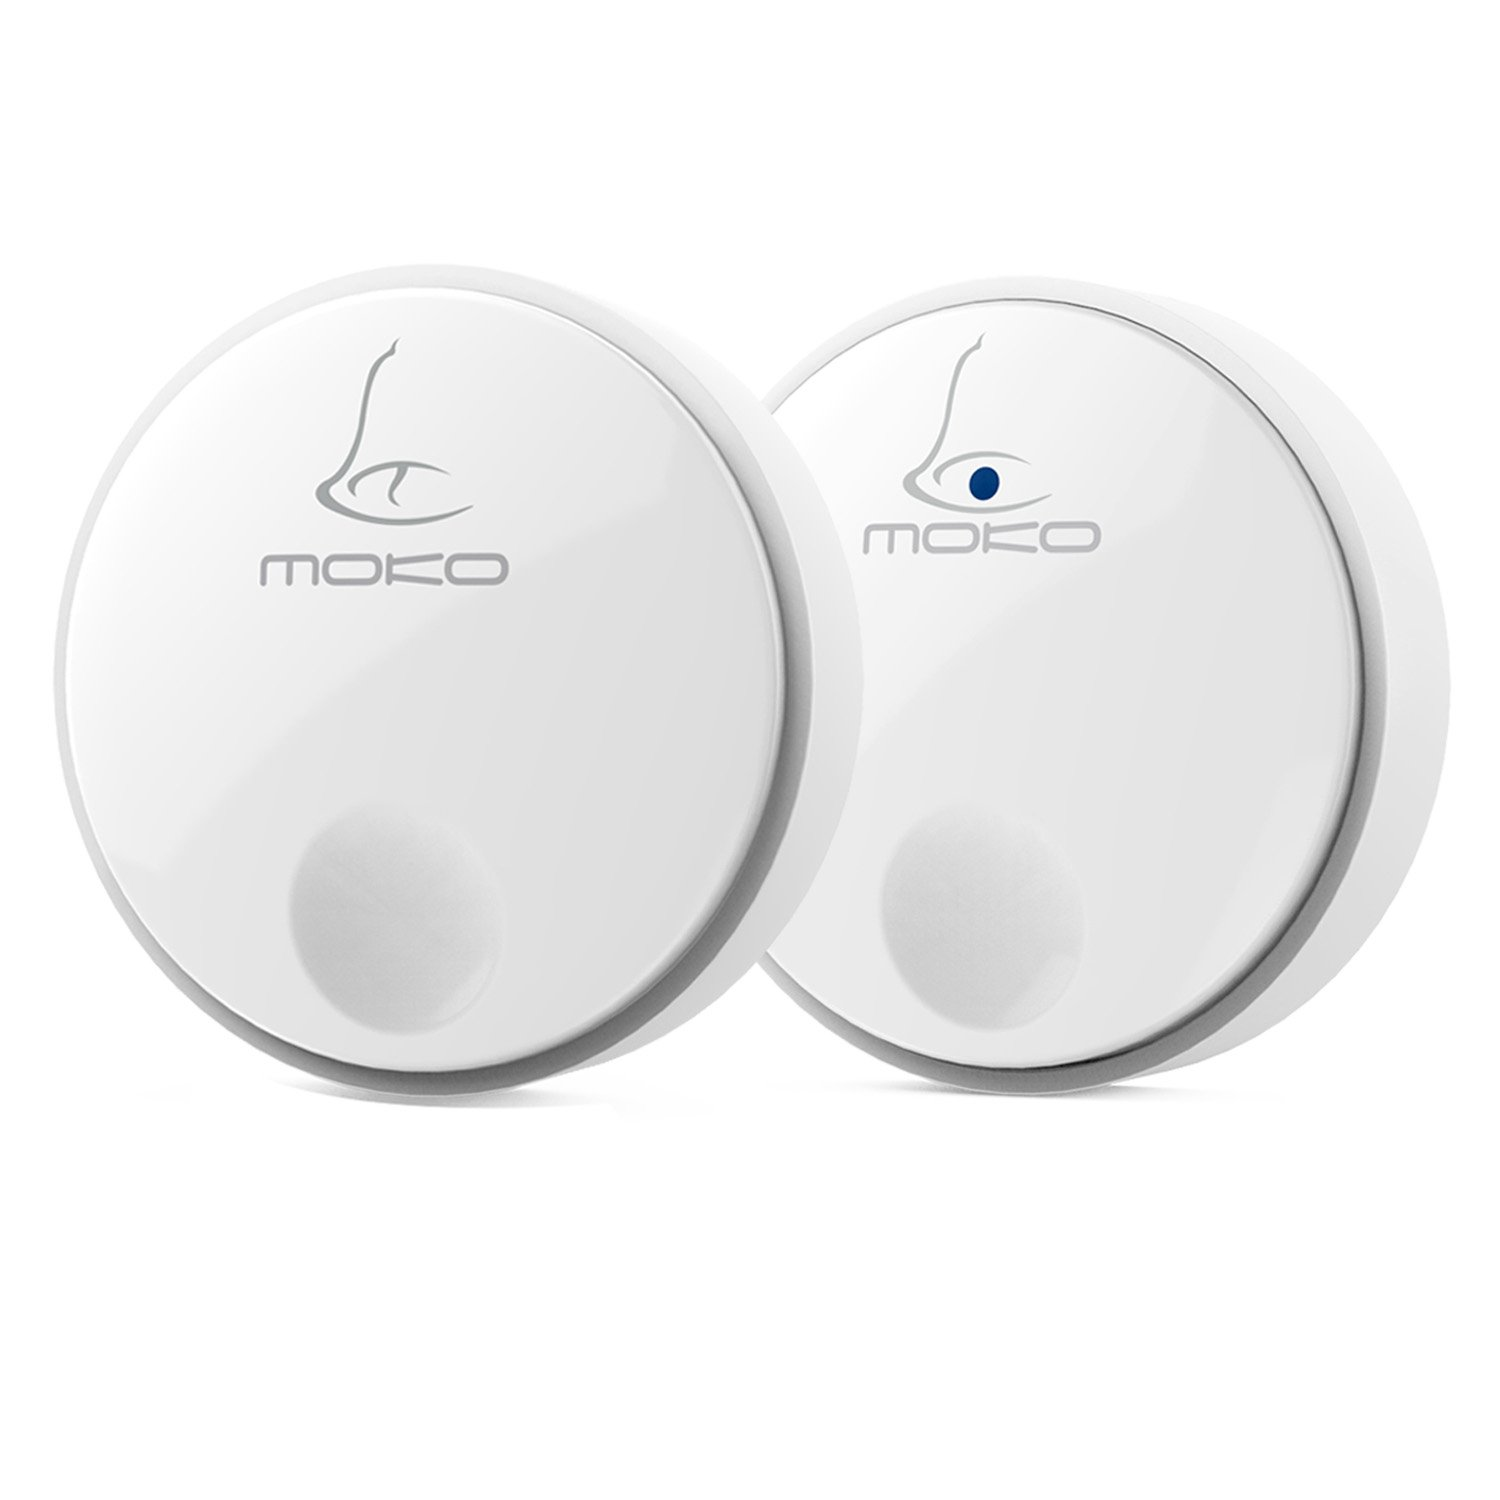 MoKo Wireless Self-Powered Doorbell, [ No Battery Required ] for Receiver / Transmitter, Plug-in Push Button with 32 Chimes, 3-Level Adjustable Volume, Work Over 300-feet(100m) Range, WHITE